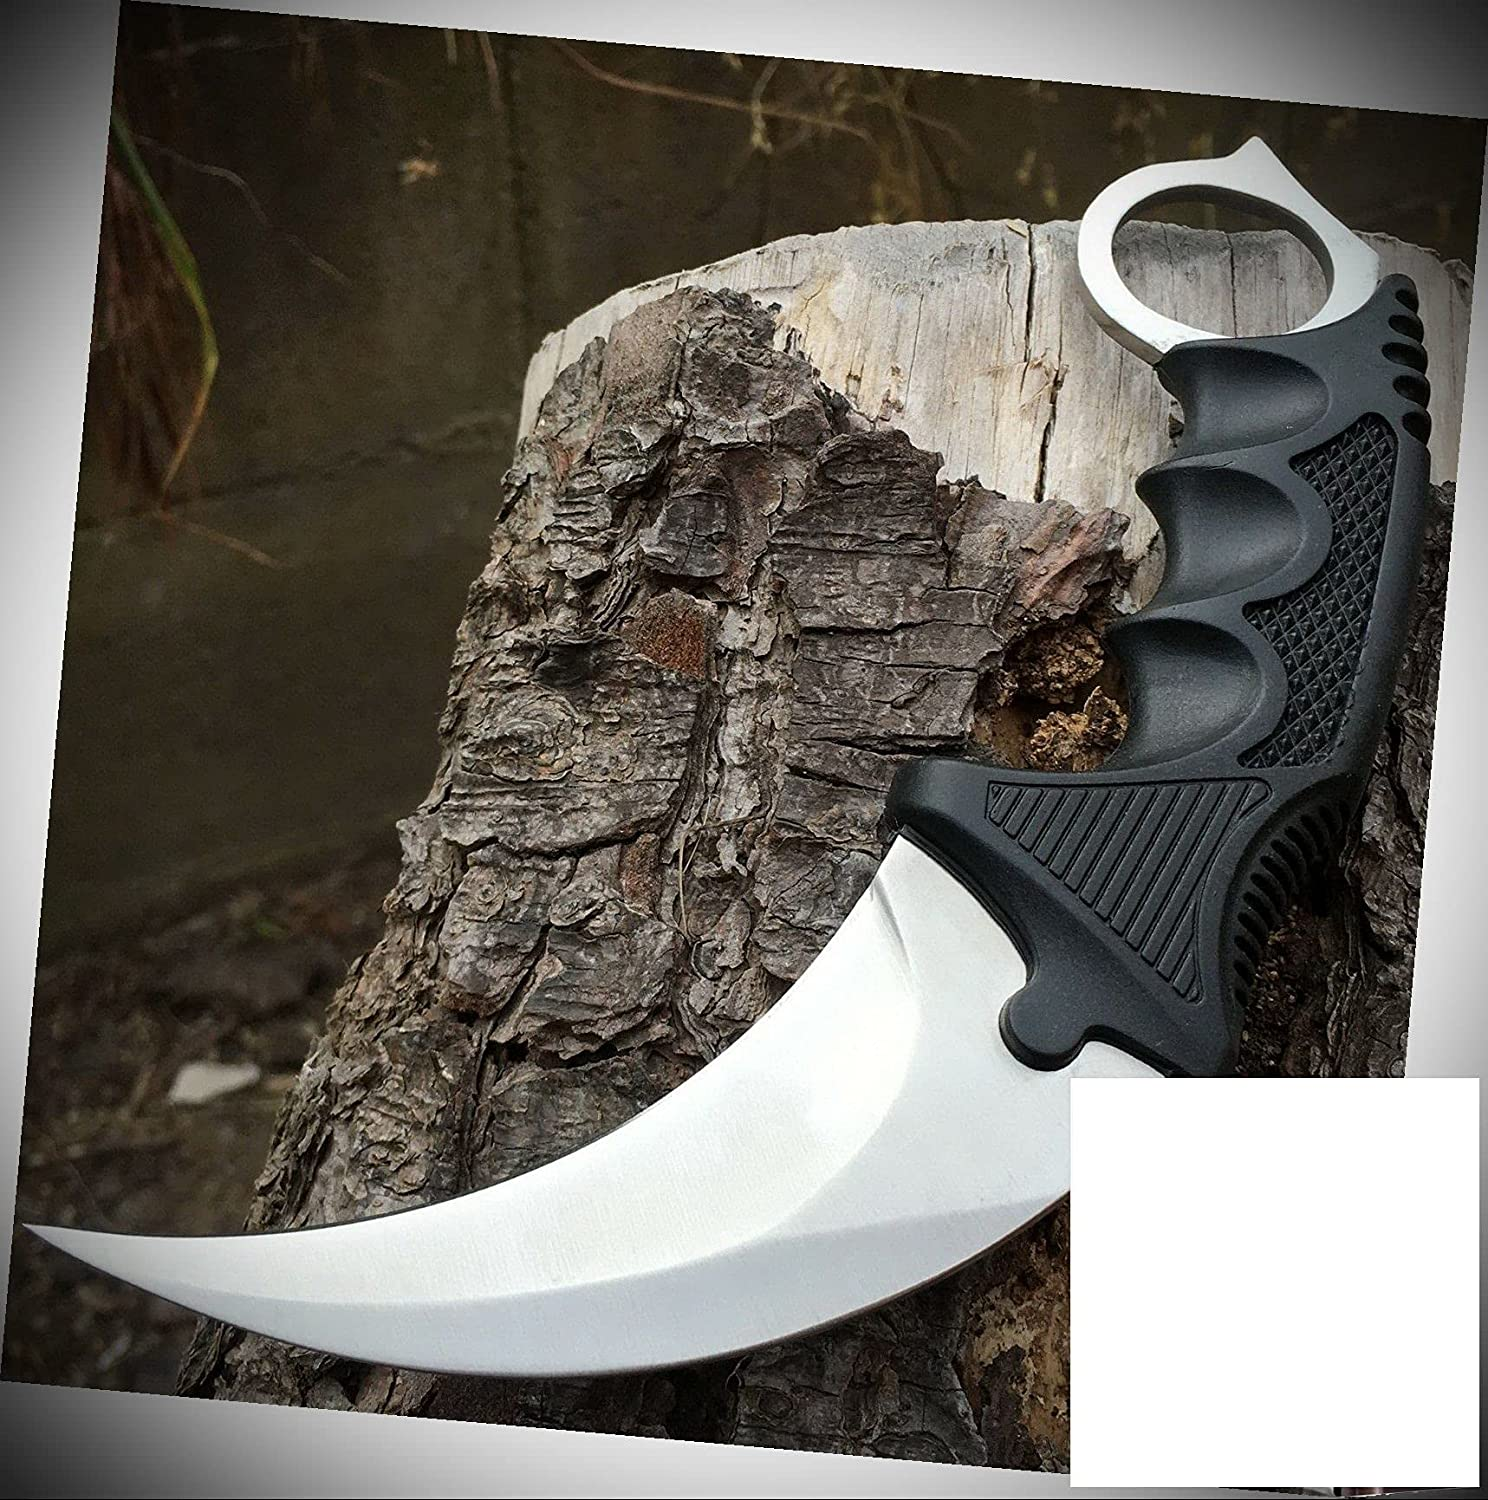 Max 78% OFF Combat Karambit Courier shipping free shipping Stainless Steel Blade Fix Knife Survival Hunting